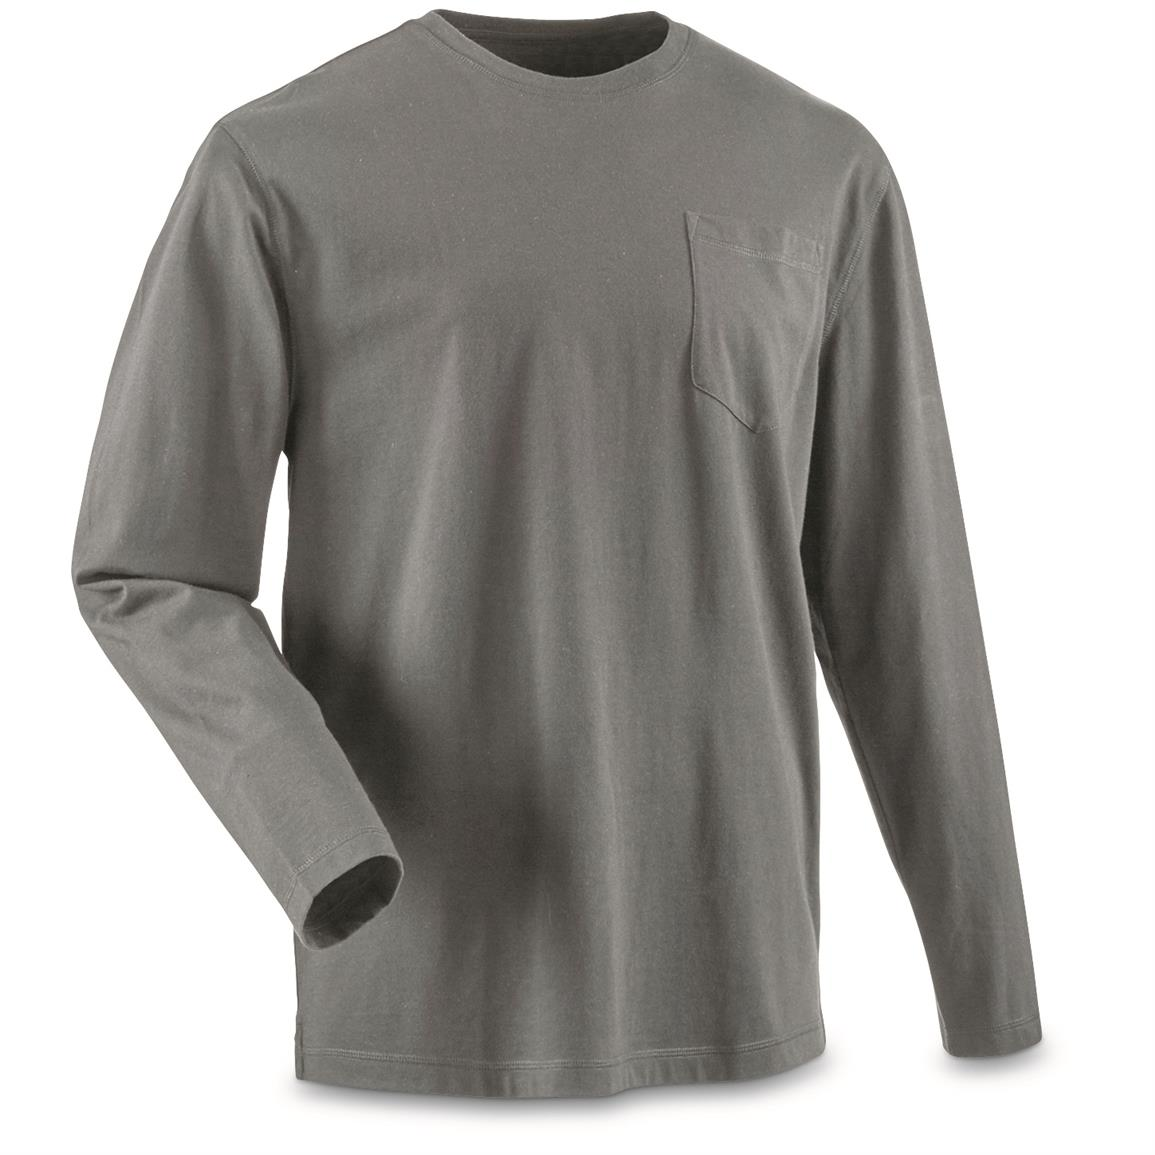 Guide Gear Men's Stain Kicker Long Sleeve Pocket T Shirt With Teflon, Gray